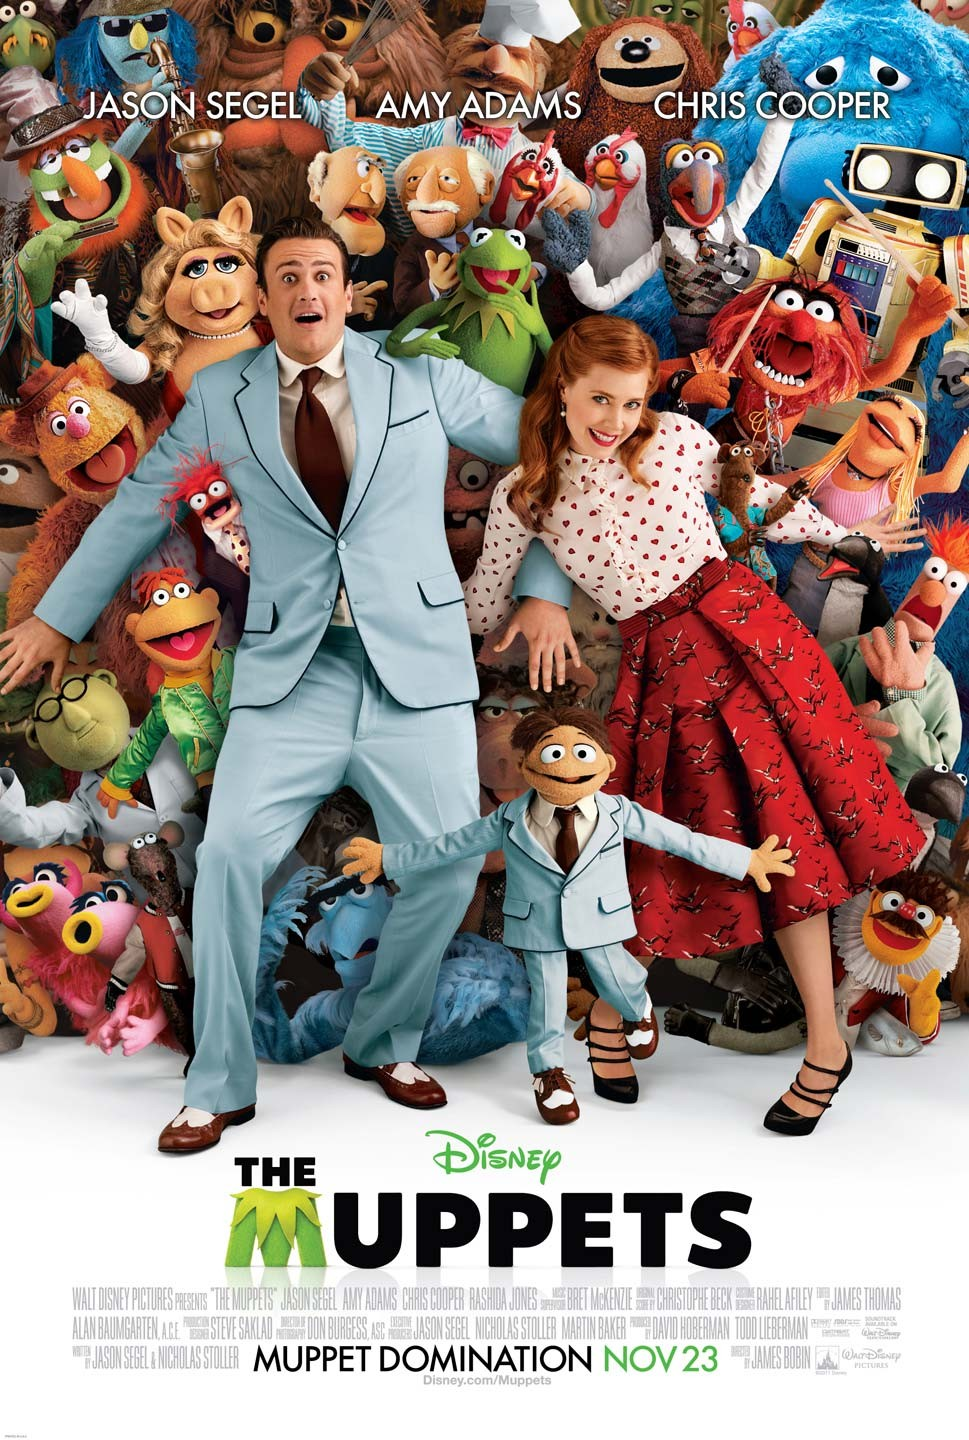 Movie Poster: The Muppets